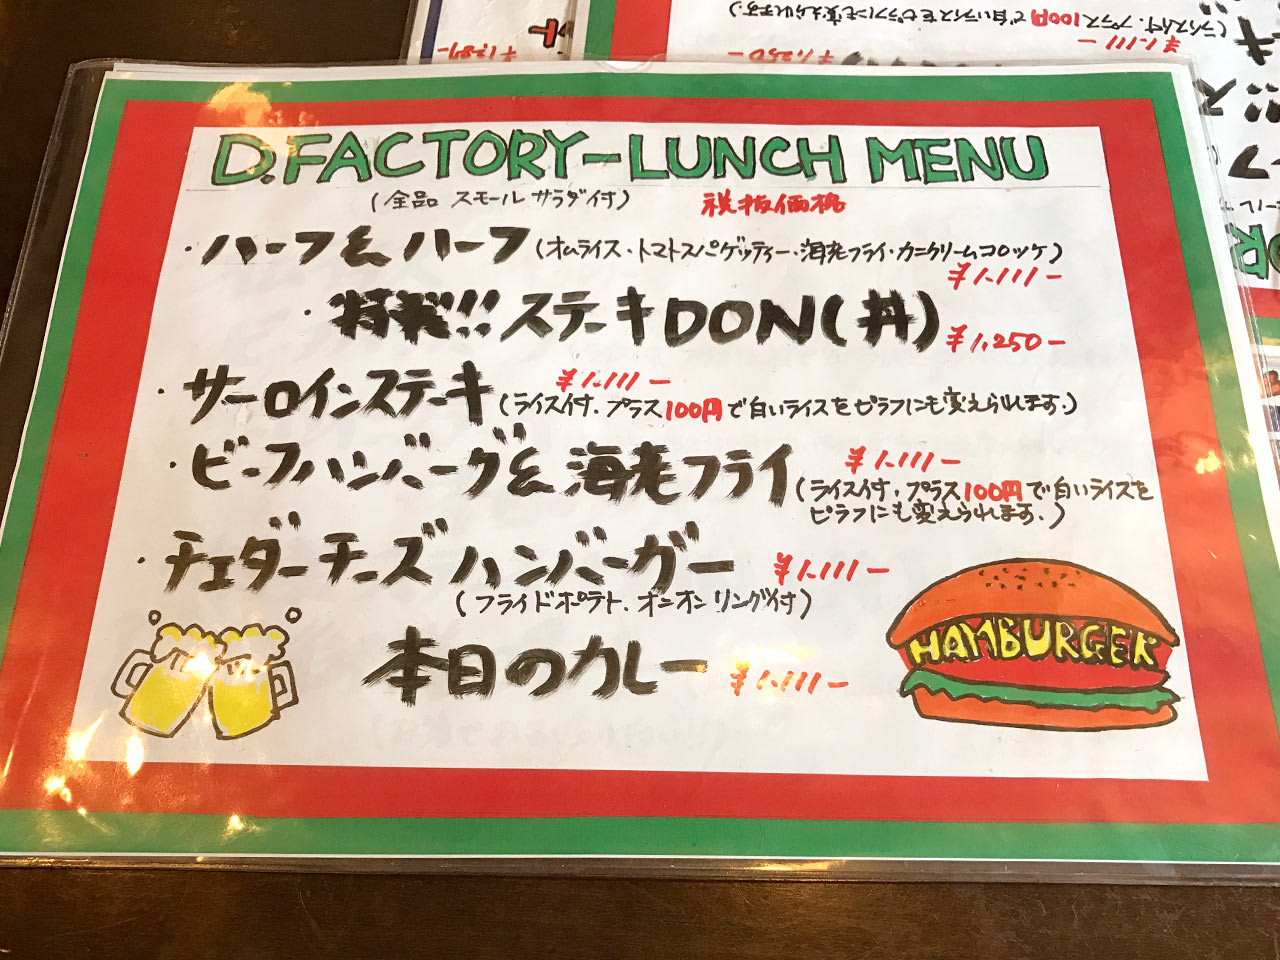 musashikoyama-d-factory-lunch-menu01